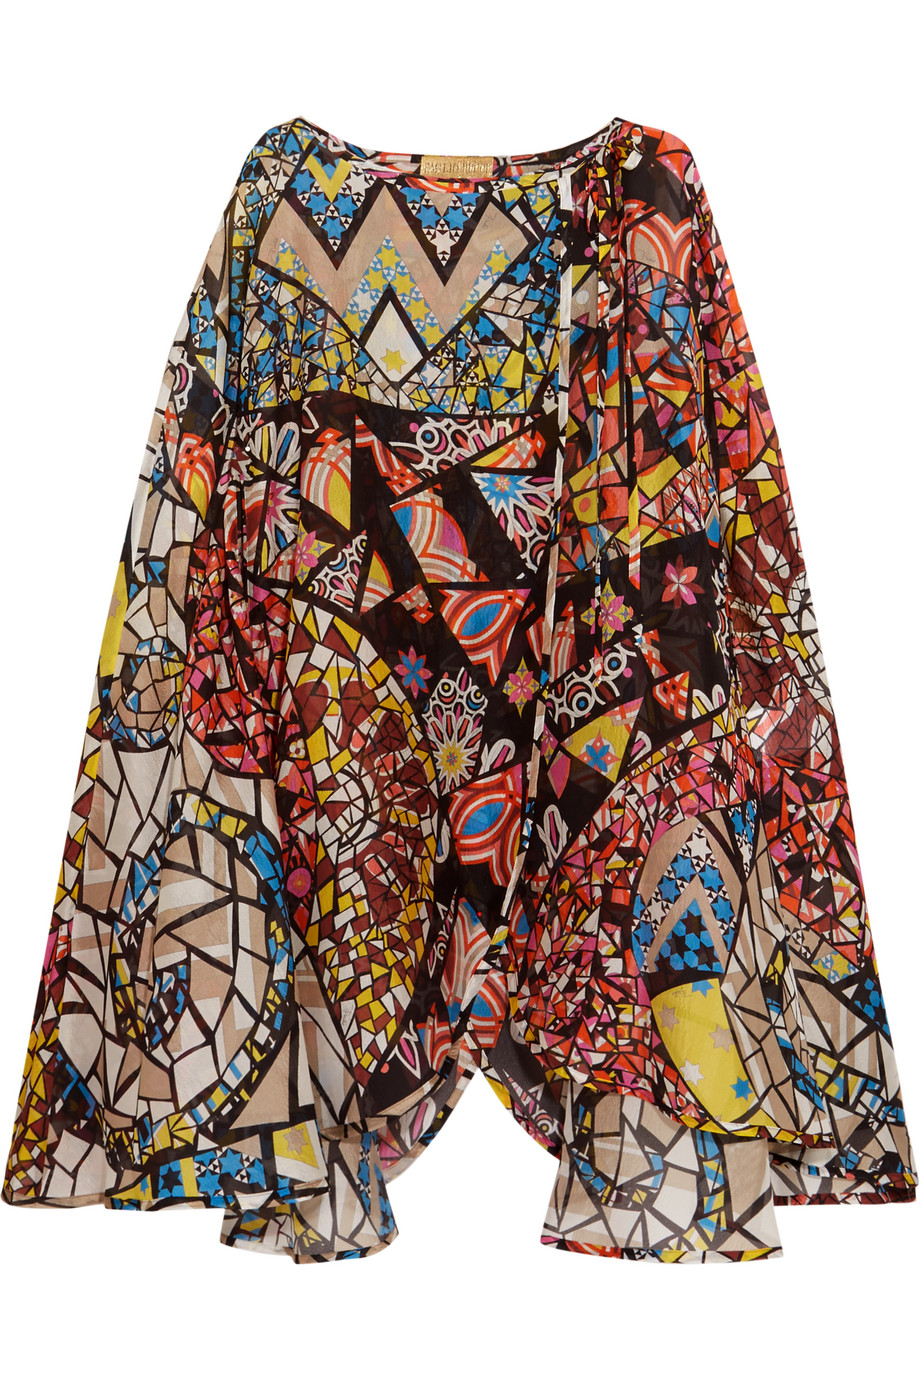 Emilio Pucci Printed Hammered-Silk Kaftan, Blue/Red, Women's - Printed, Size: 46